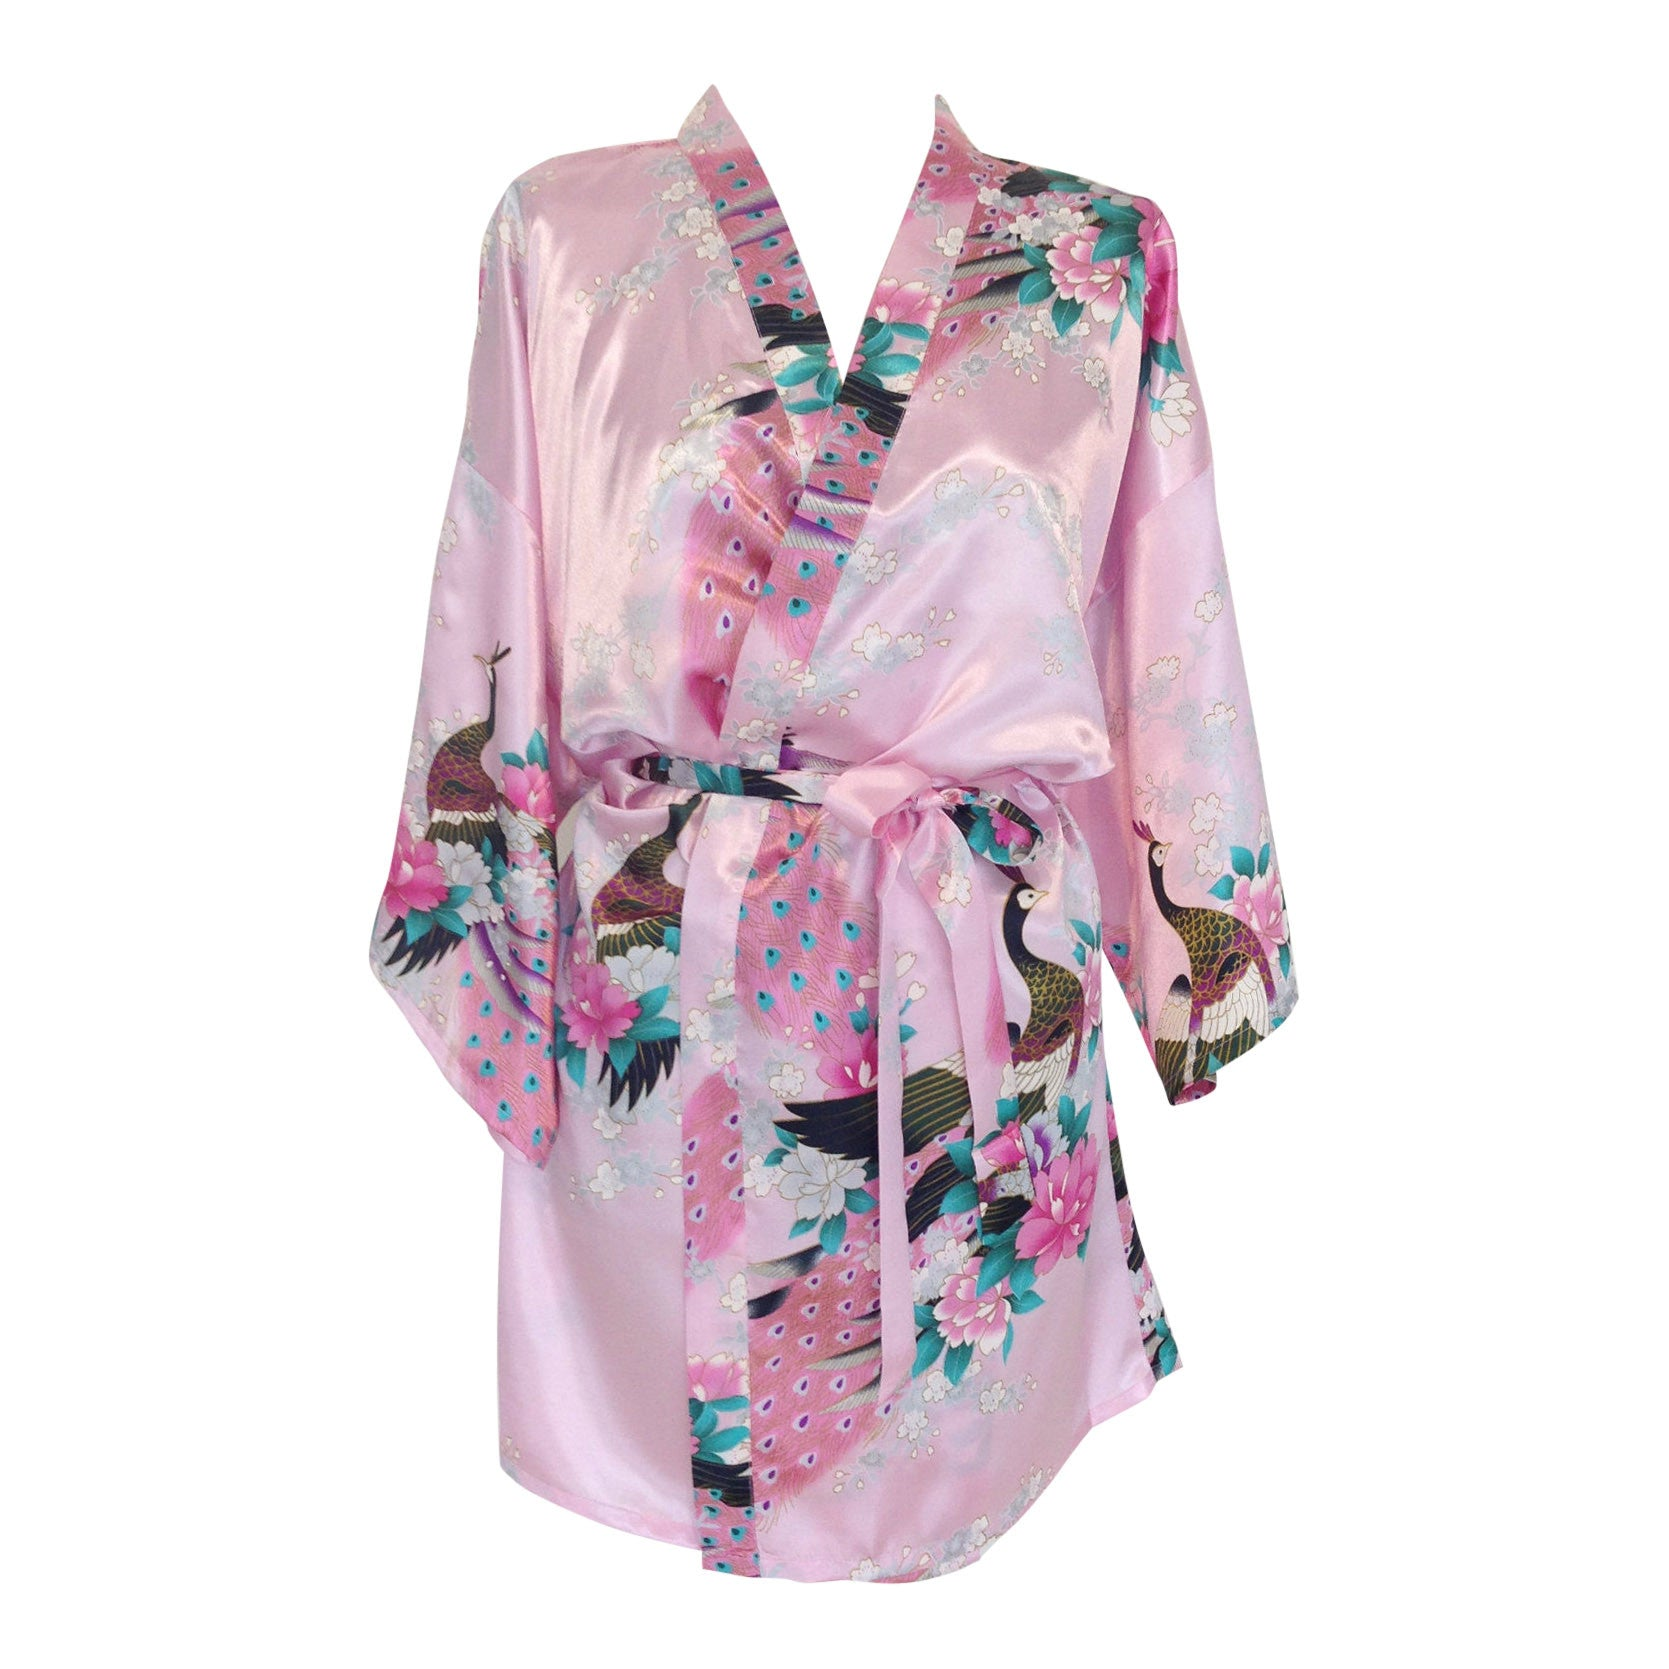 Satin Bride & Bridesmaid Dressing Gowns Kimonos Robes – The Bridal ...